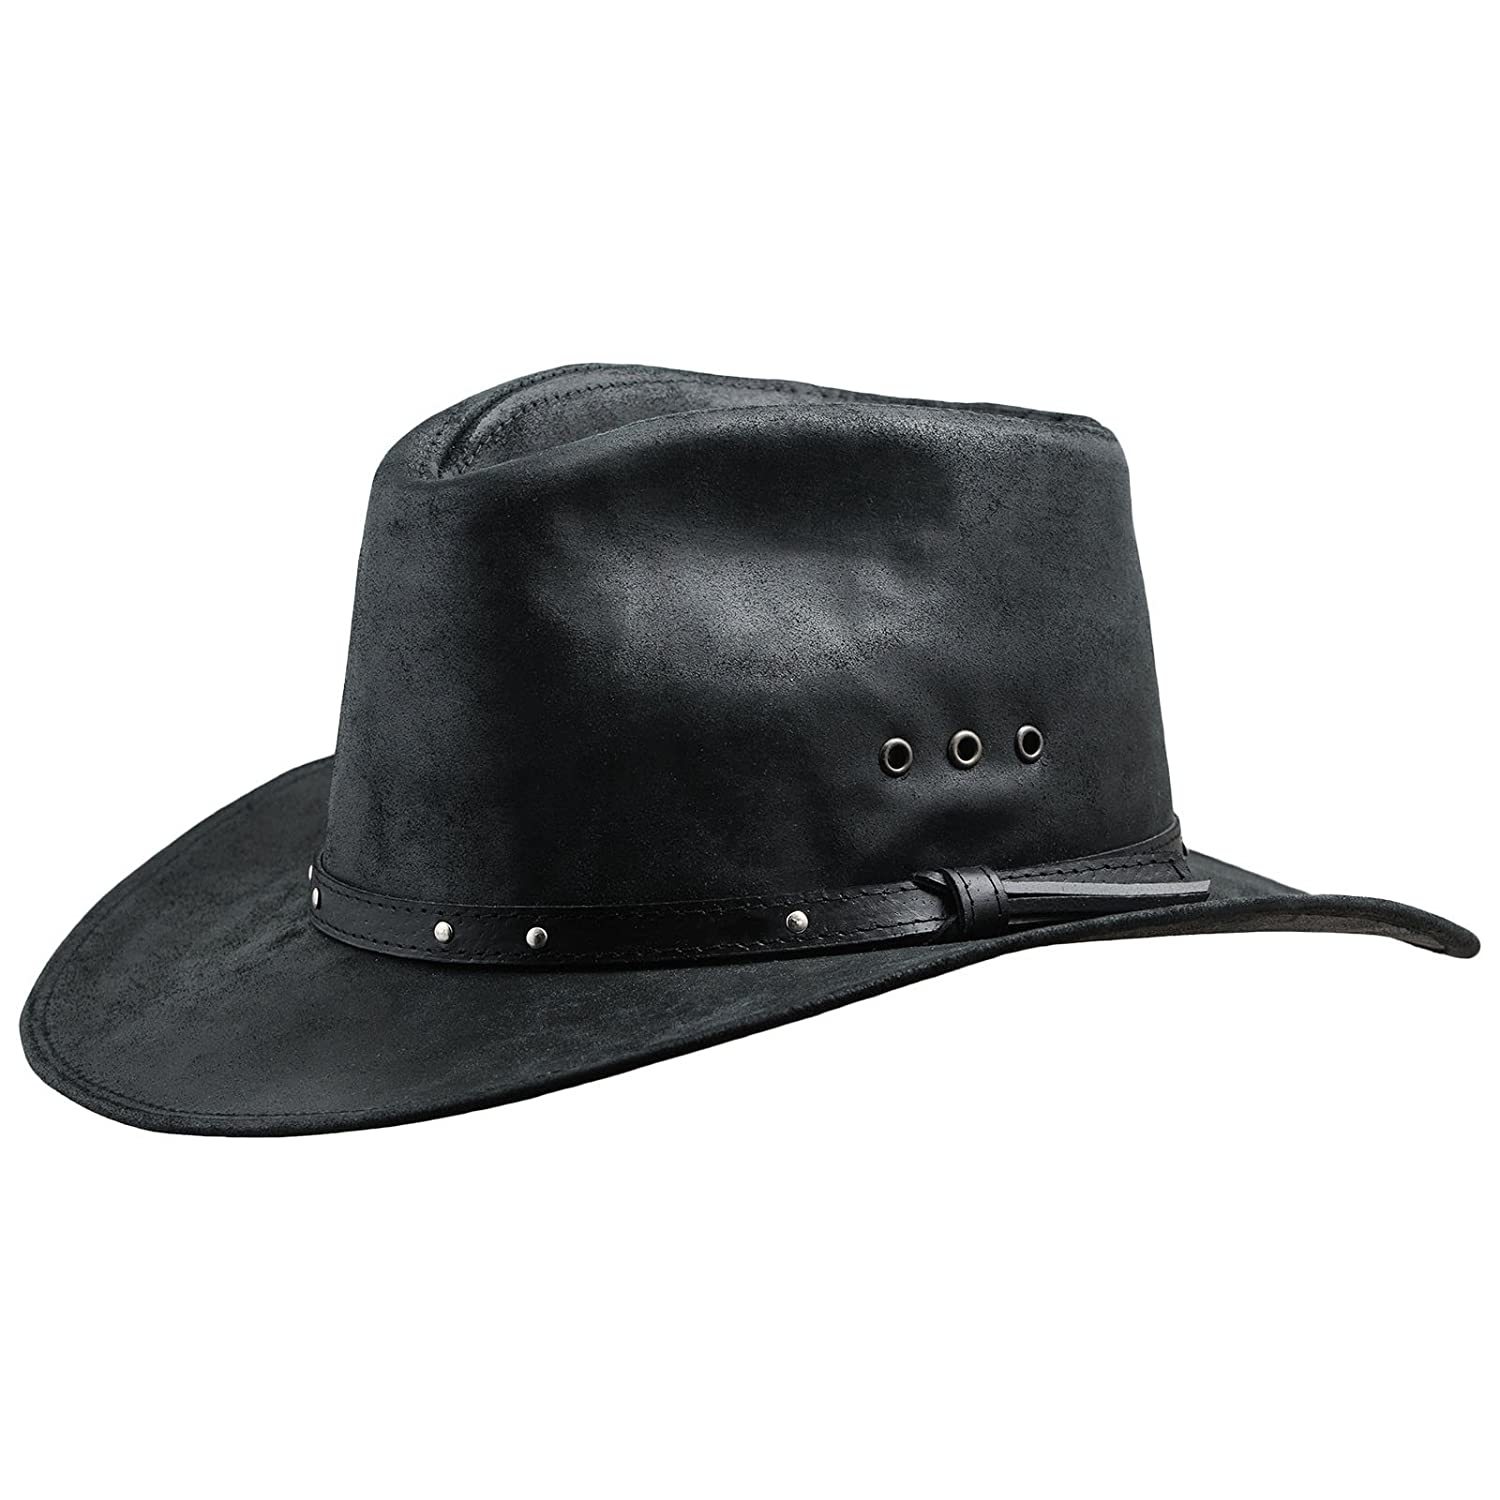 Sterkowski Cattle Leather Classic Western Cowboy Outback Hat WTL-KWB-Sv2US 8 1/8 $P